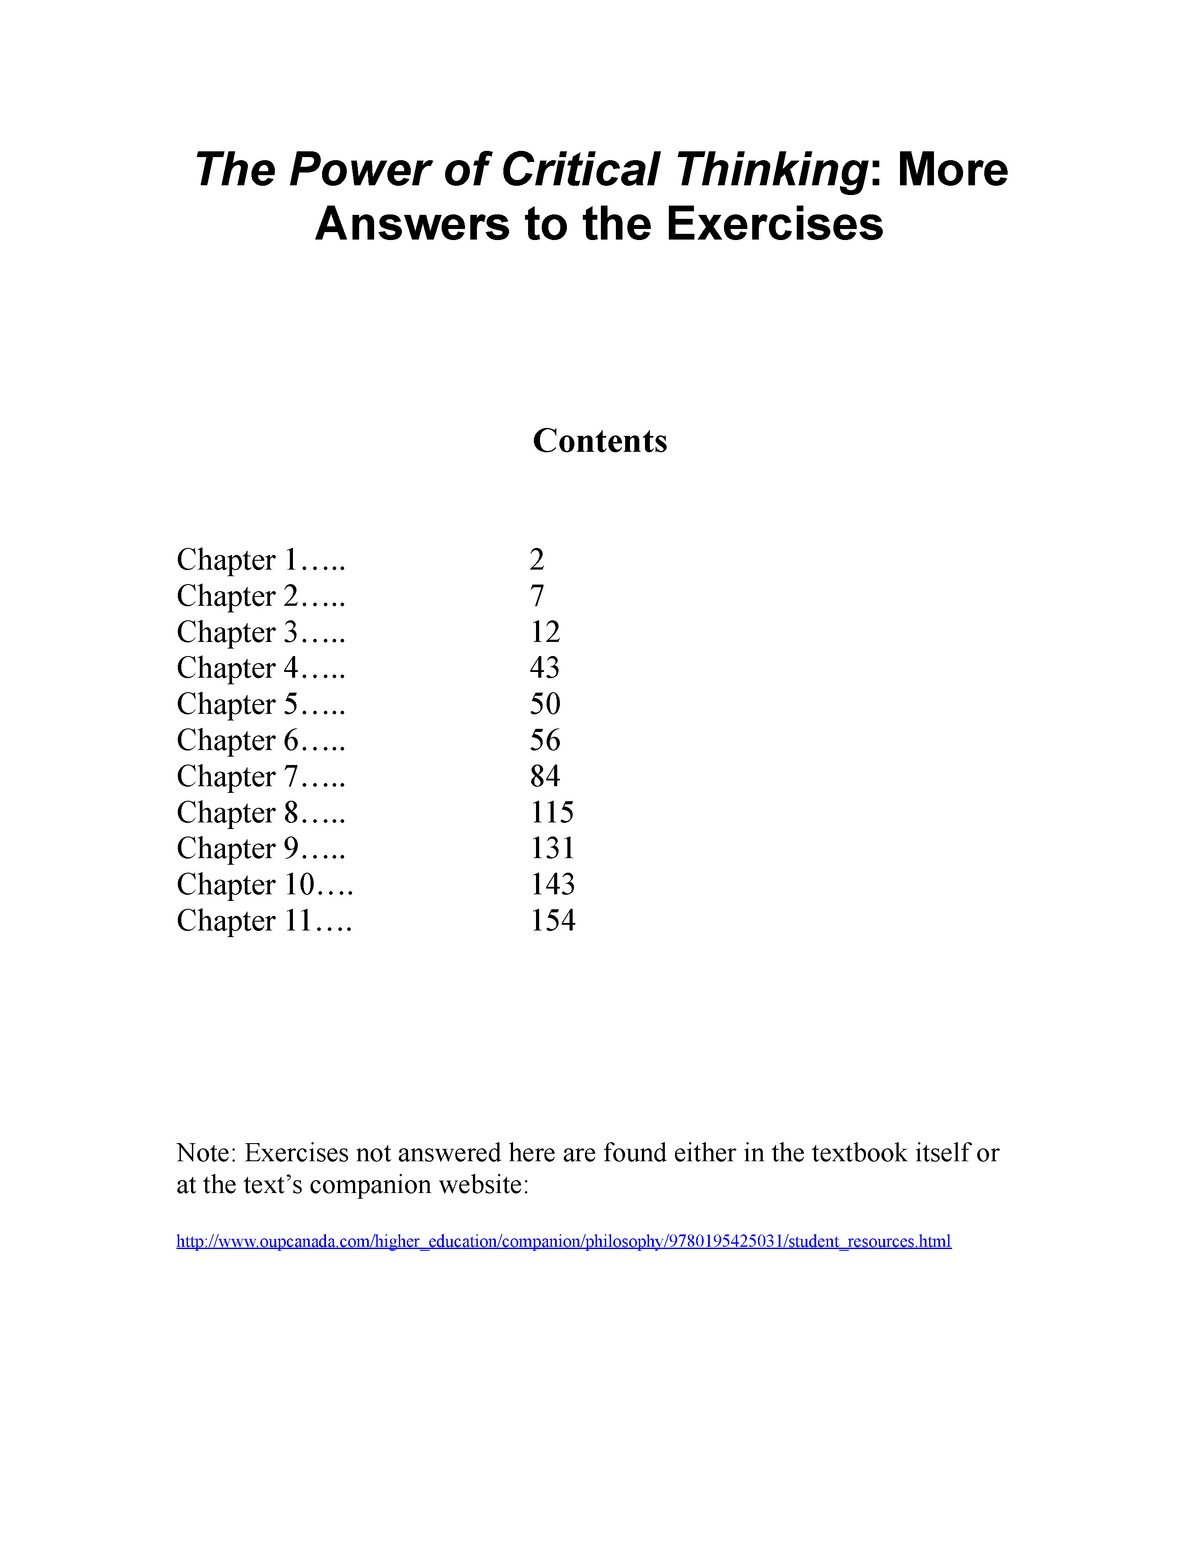 Vaughn Exercise Answers - Critical Thinking PHIL105 - StuDocu